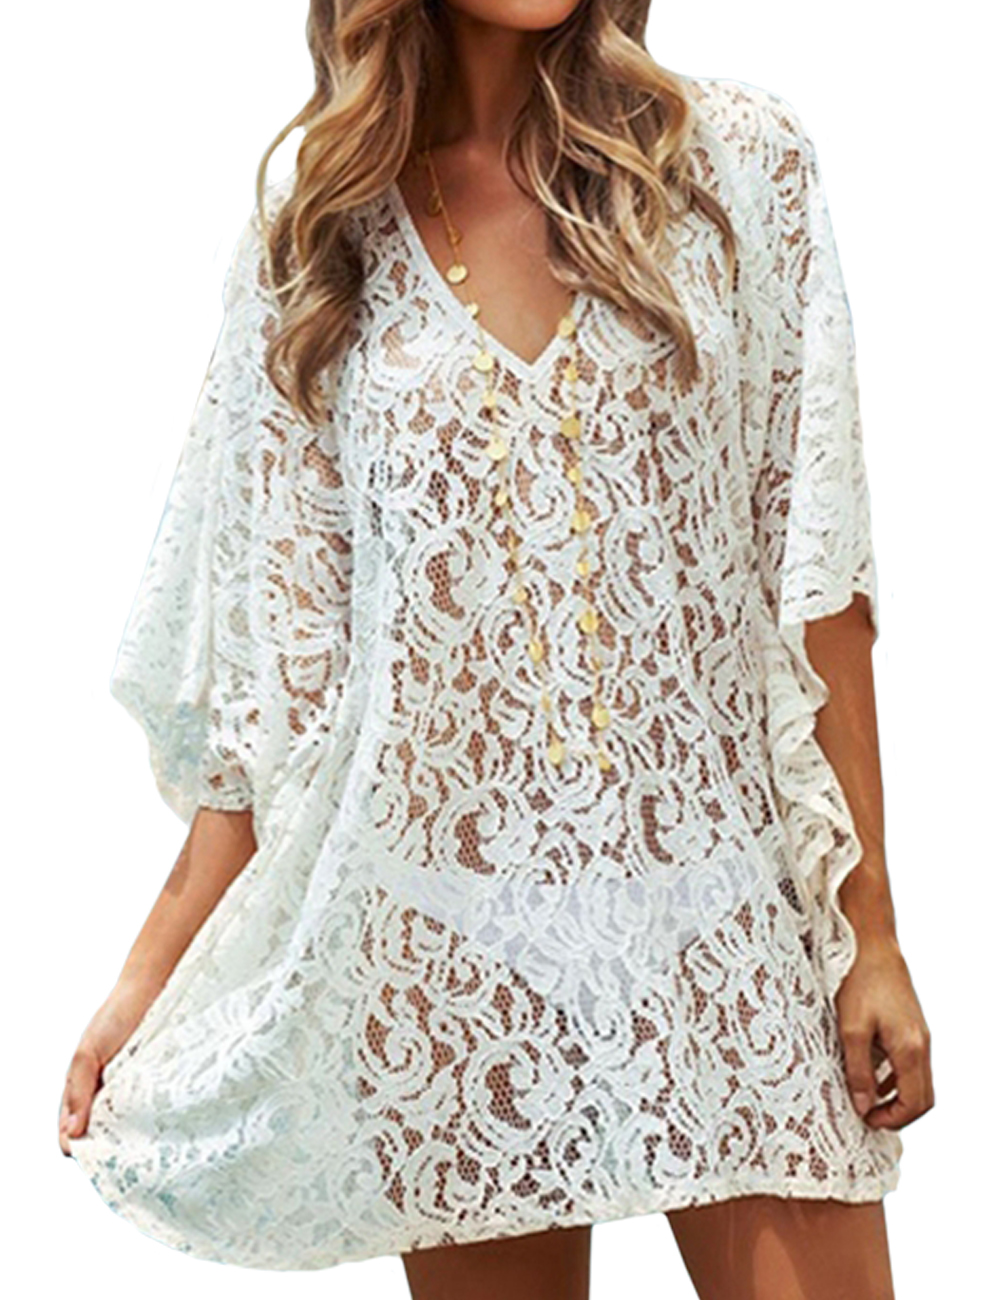 Lace Bikini Cover Up Dress White Beach Wear Cangas De ...